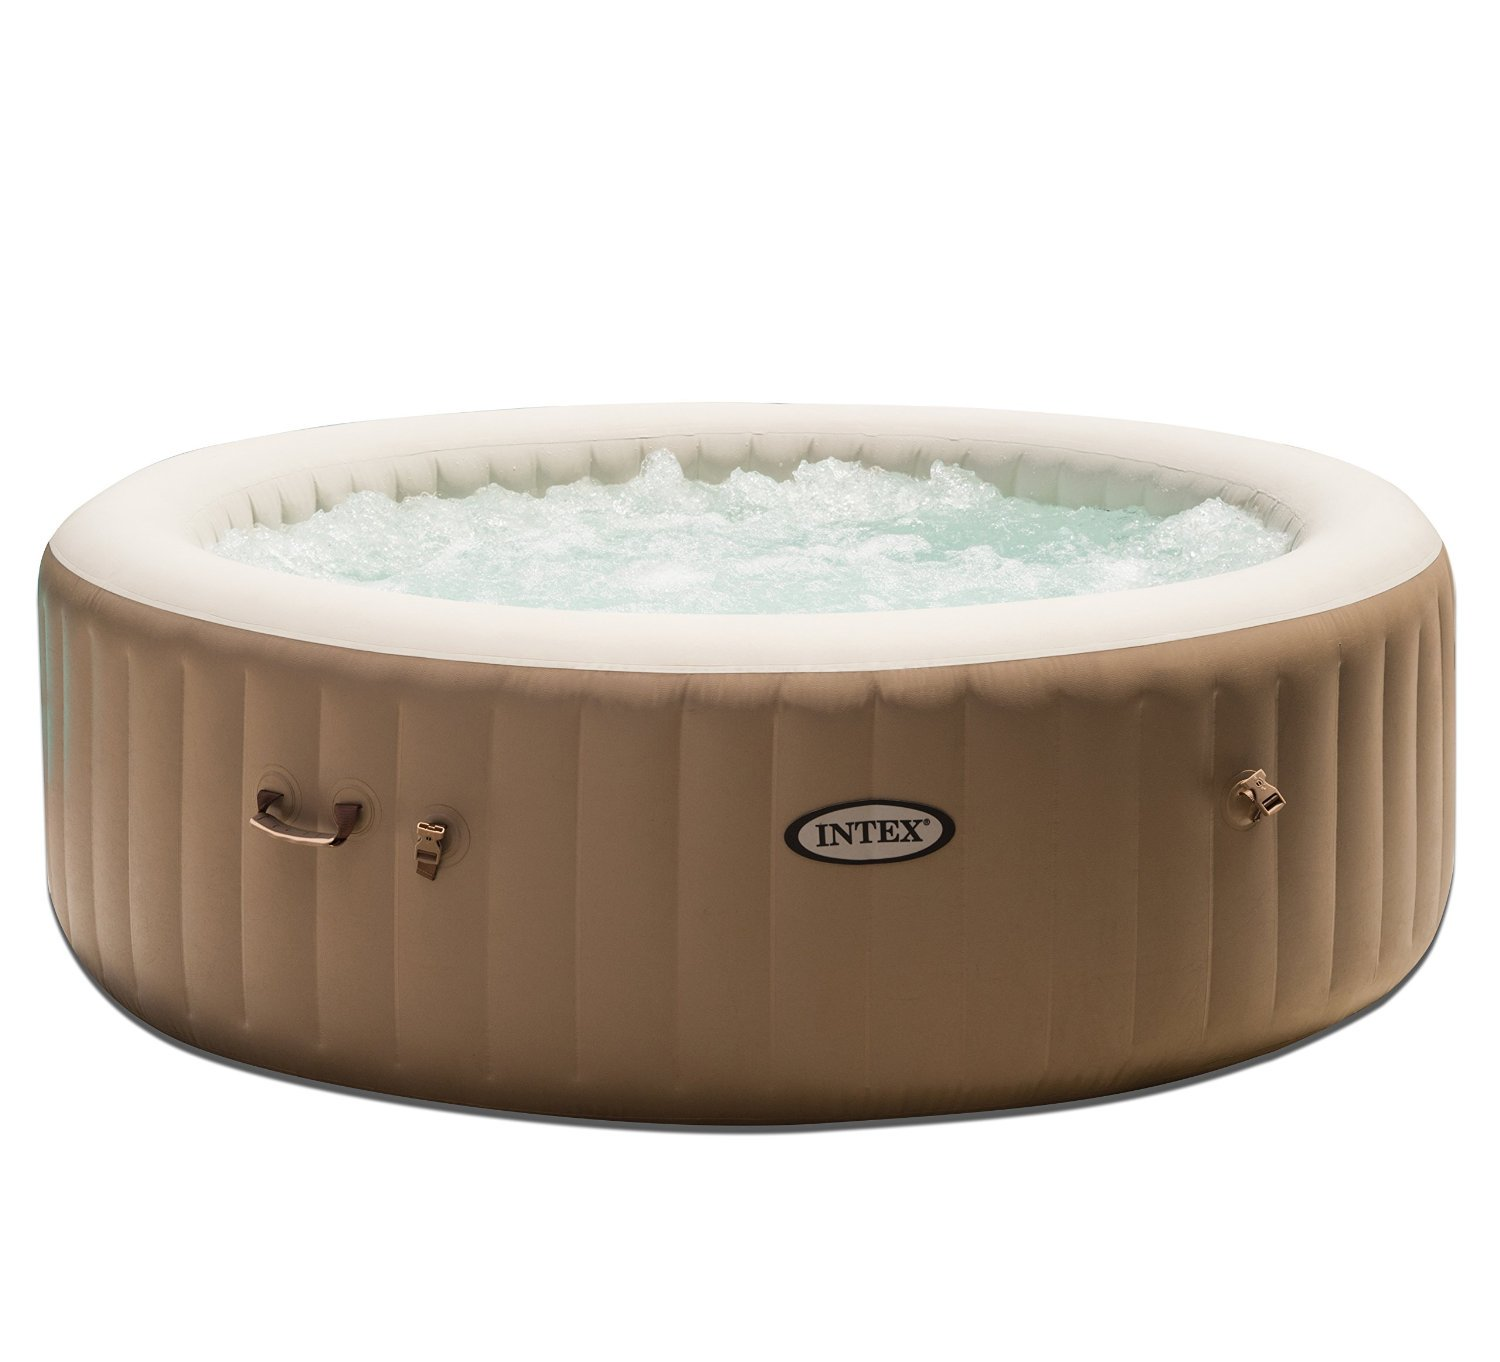 Intex Inflatable Pure Bubble Spa 6-Person Portable Heated Hot Tub & Cup Holder by Intex